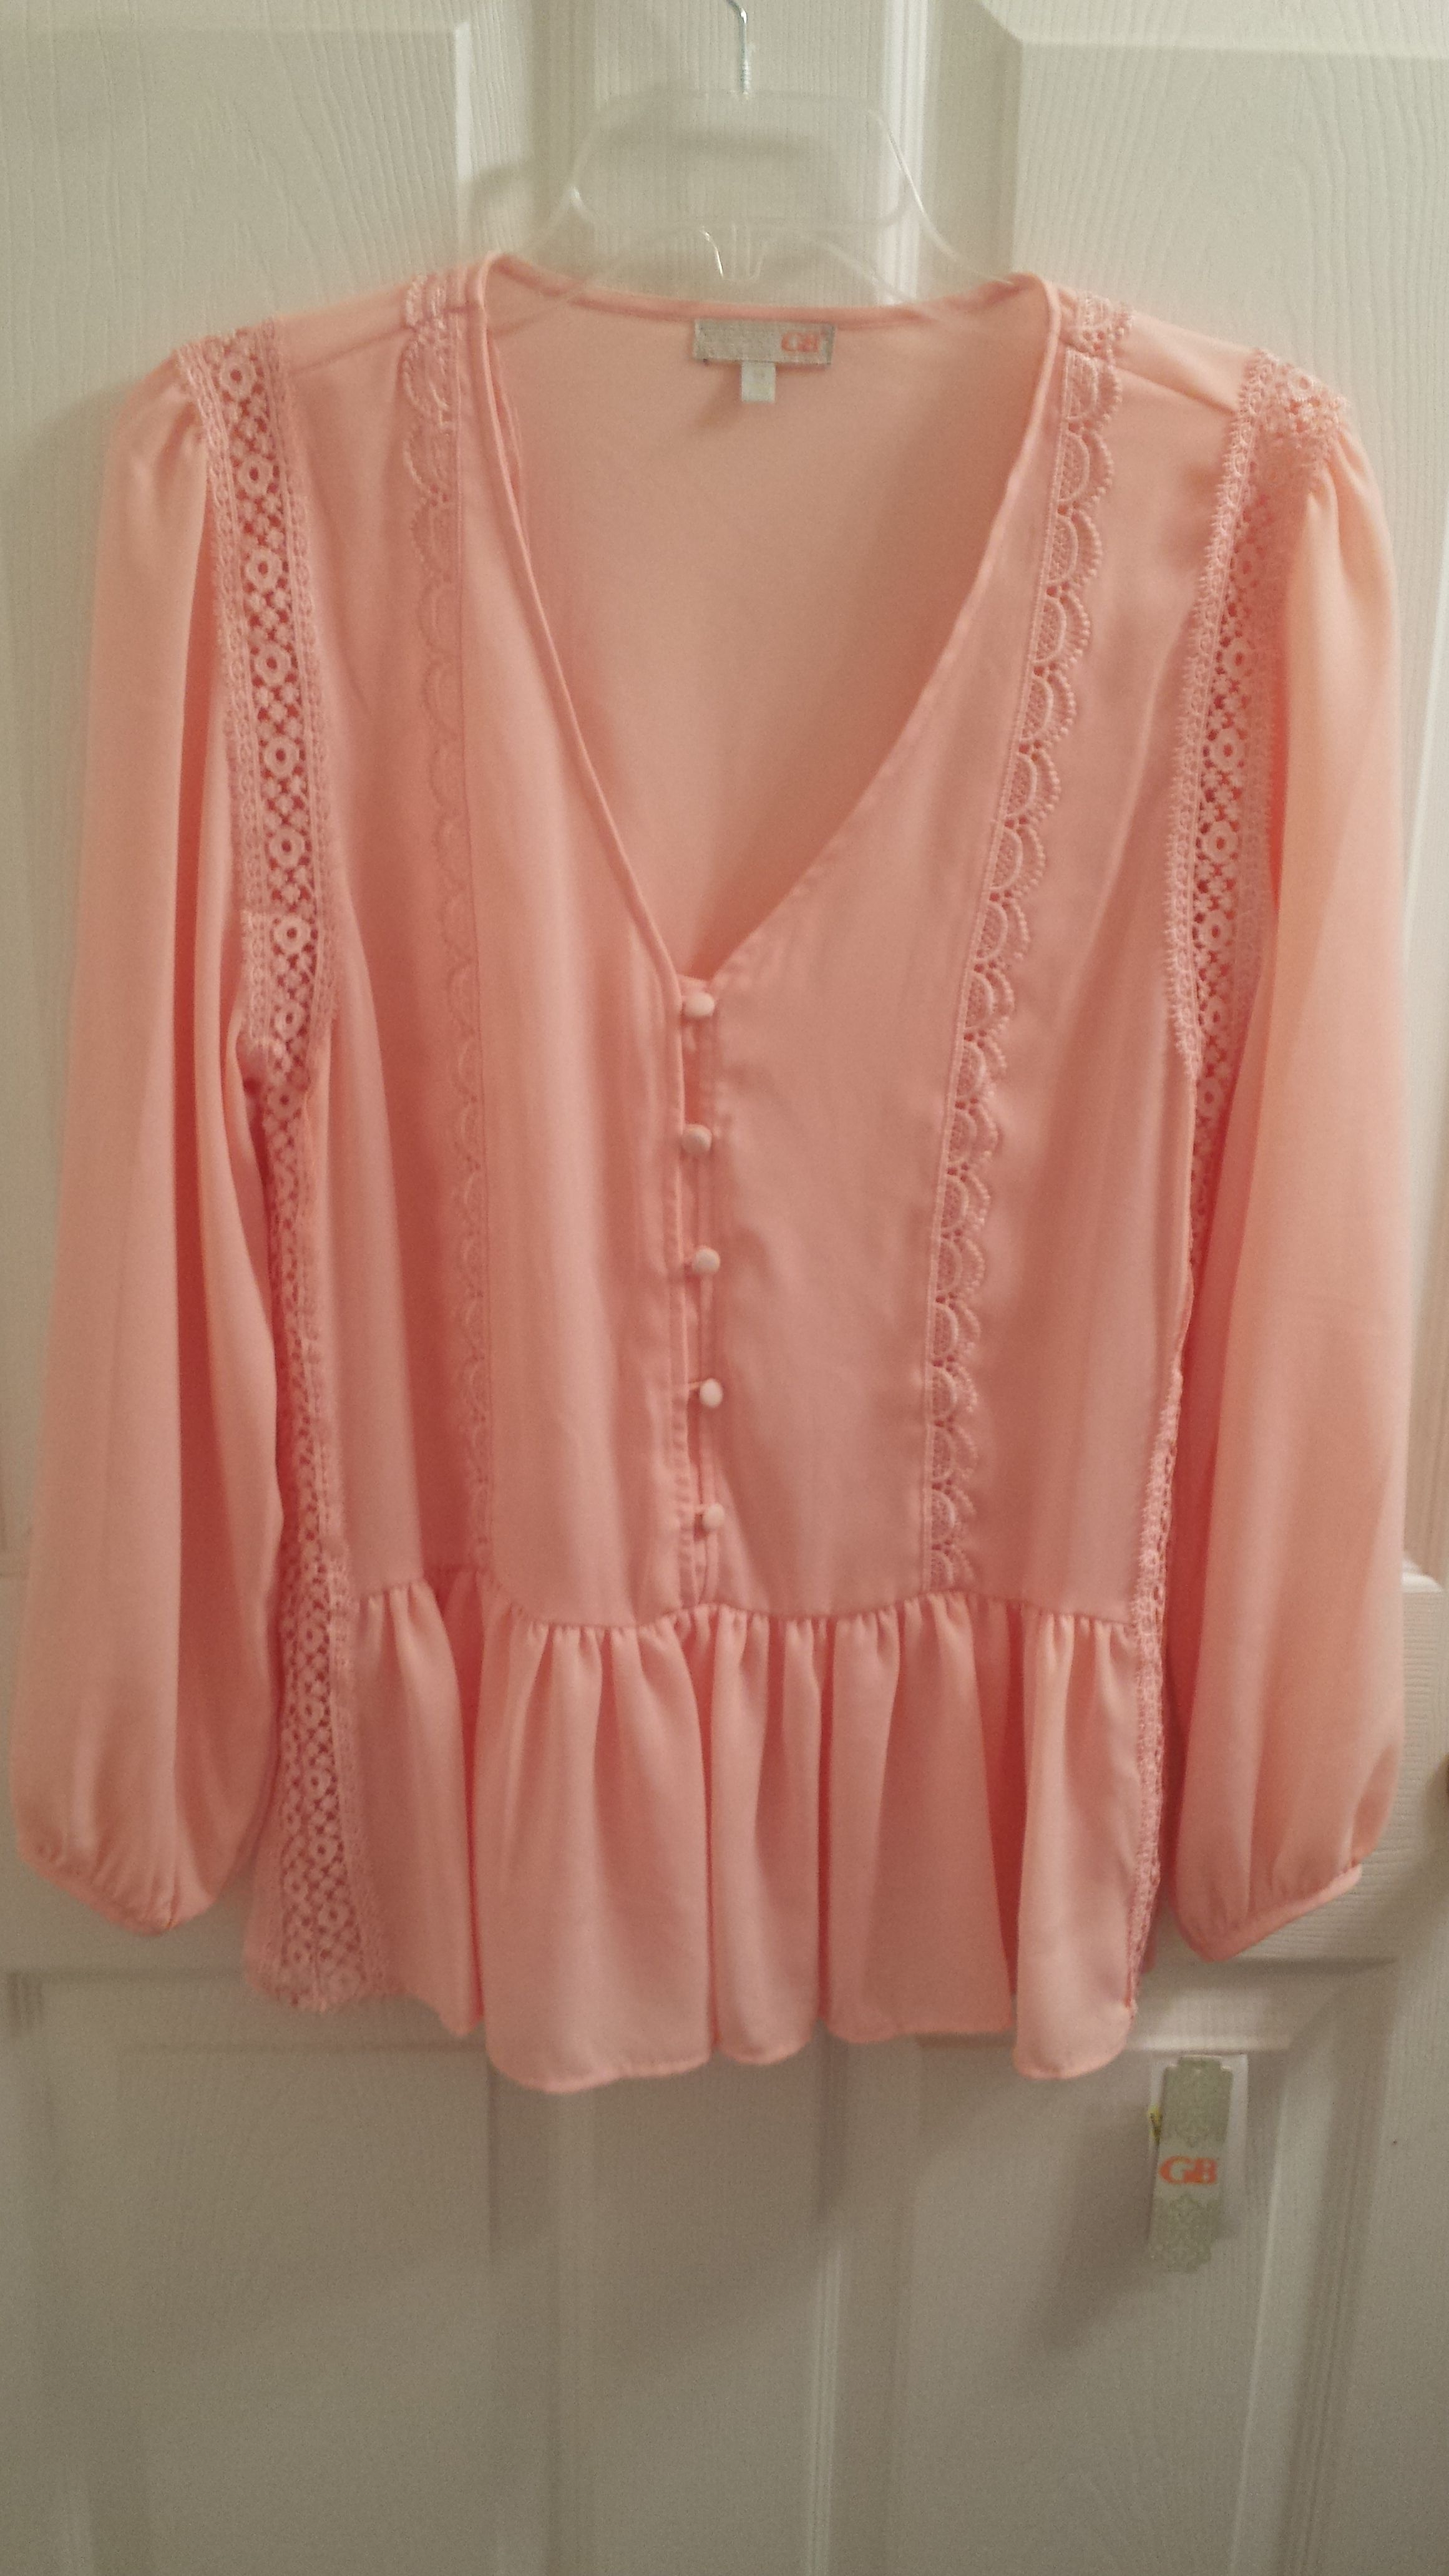 d2d0eaae2a0e2 Gianni Bini Peach Top. Get the lowest price in town on this fabulous Gianni  Bini top in Peach and other colors too! Tradesy makes designer fashion ...